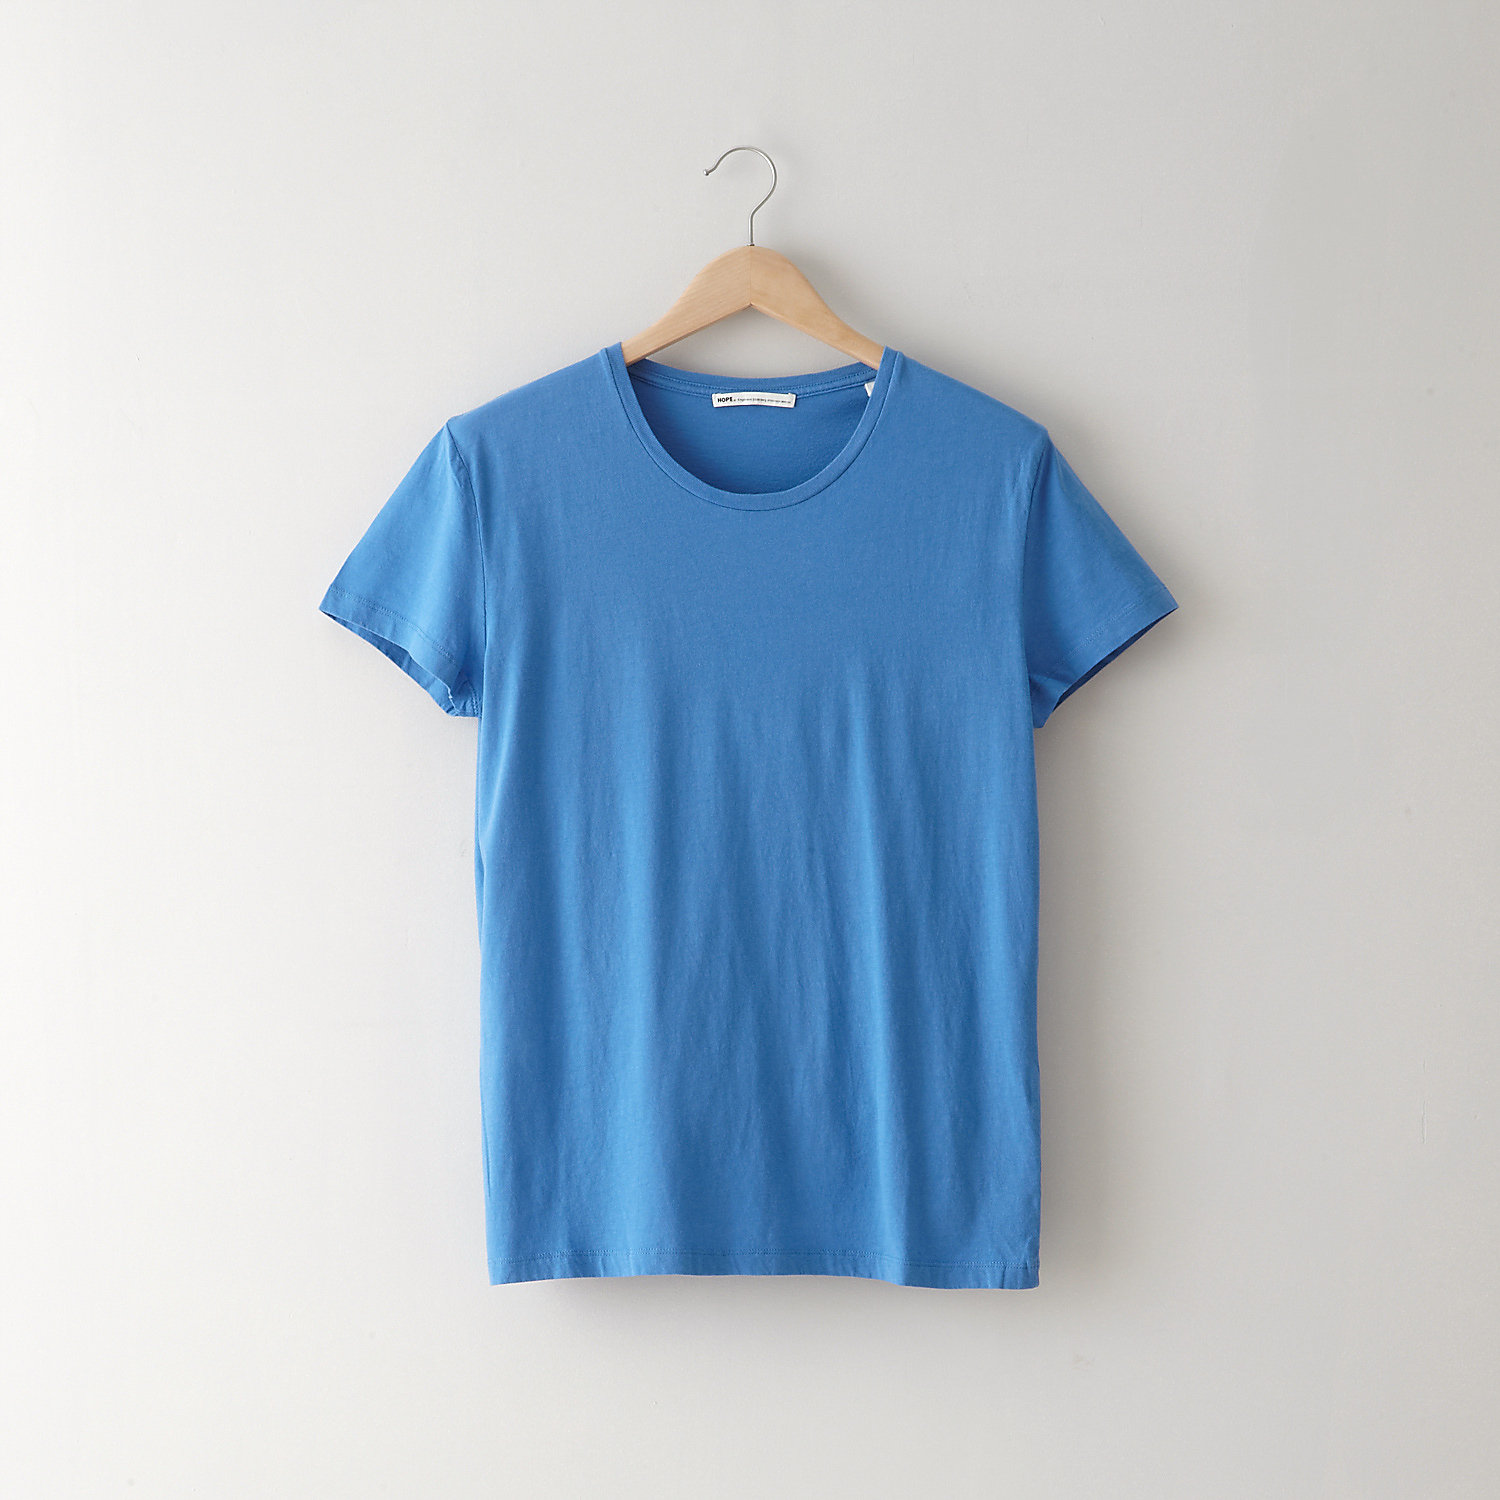 ALIAS T-SHIRT